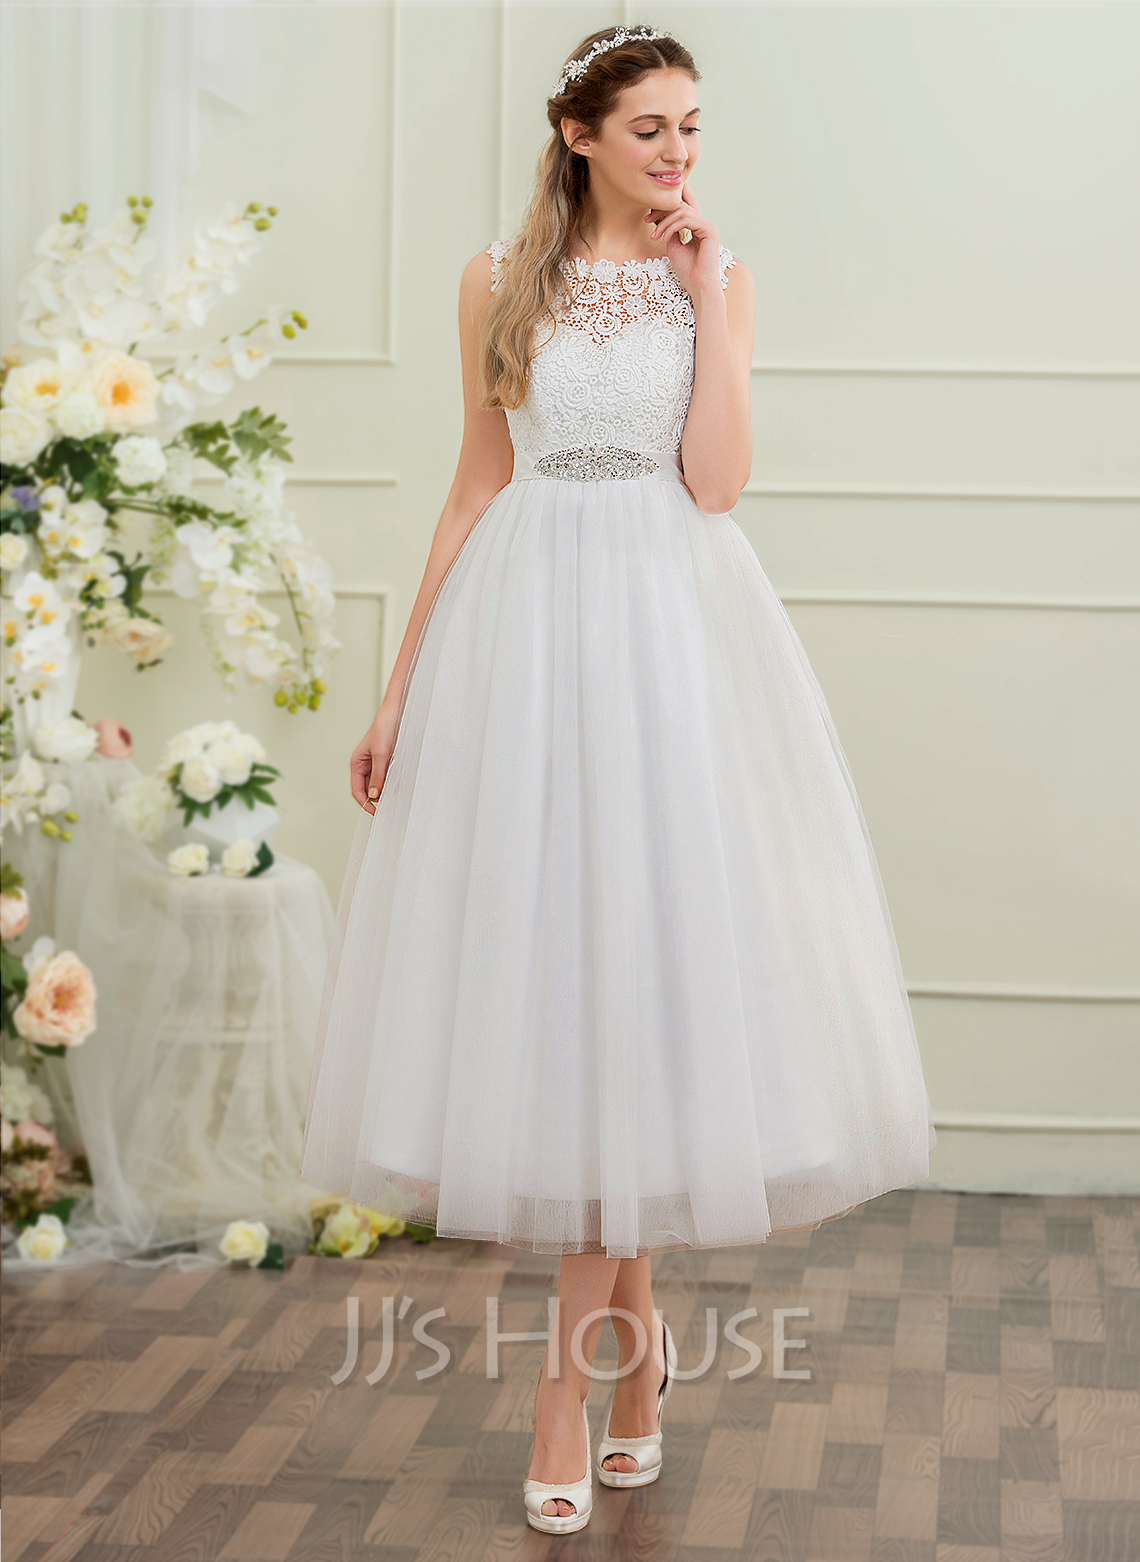 c6deb1cfe8d Ball-Gown Princess Scoop Neck Tea-Length Tulle Wedding Dress With Beading  Sequins. Loading zoom